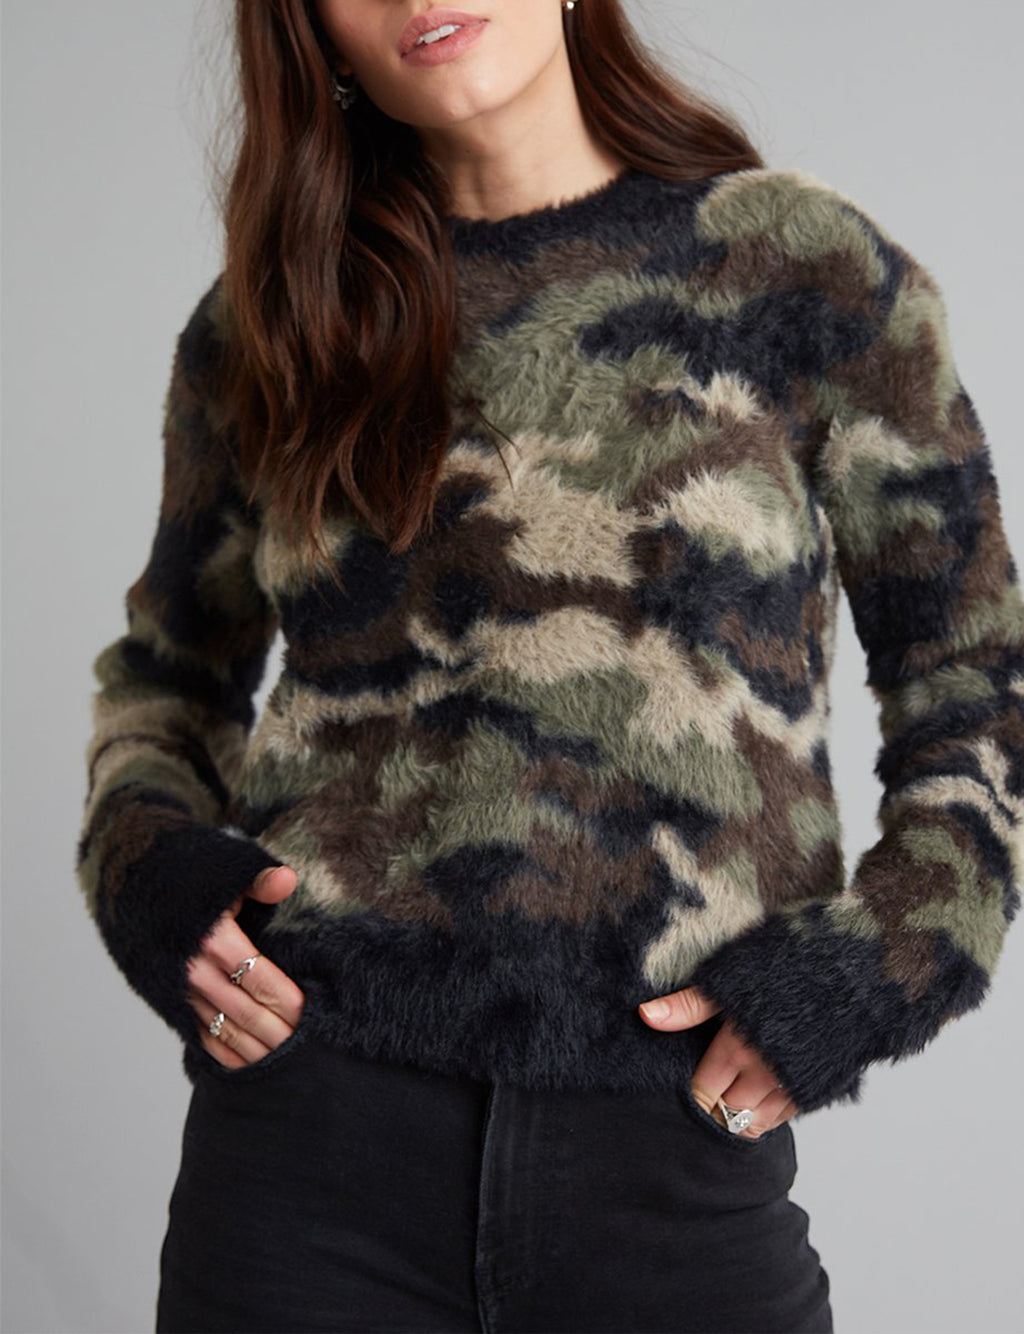 Fuzzy Camo Crew Neck Sweater in Green/Black